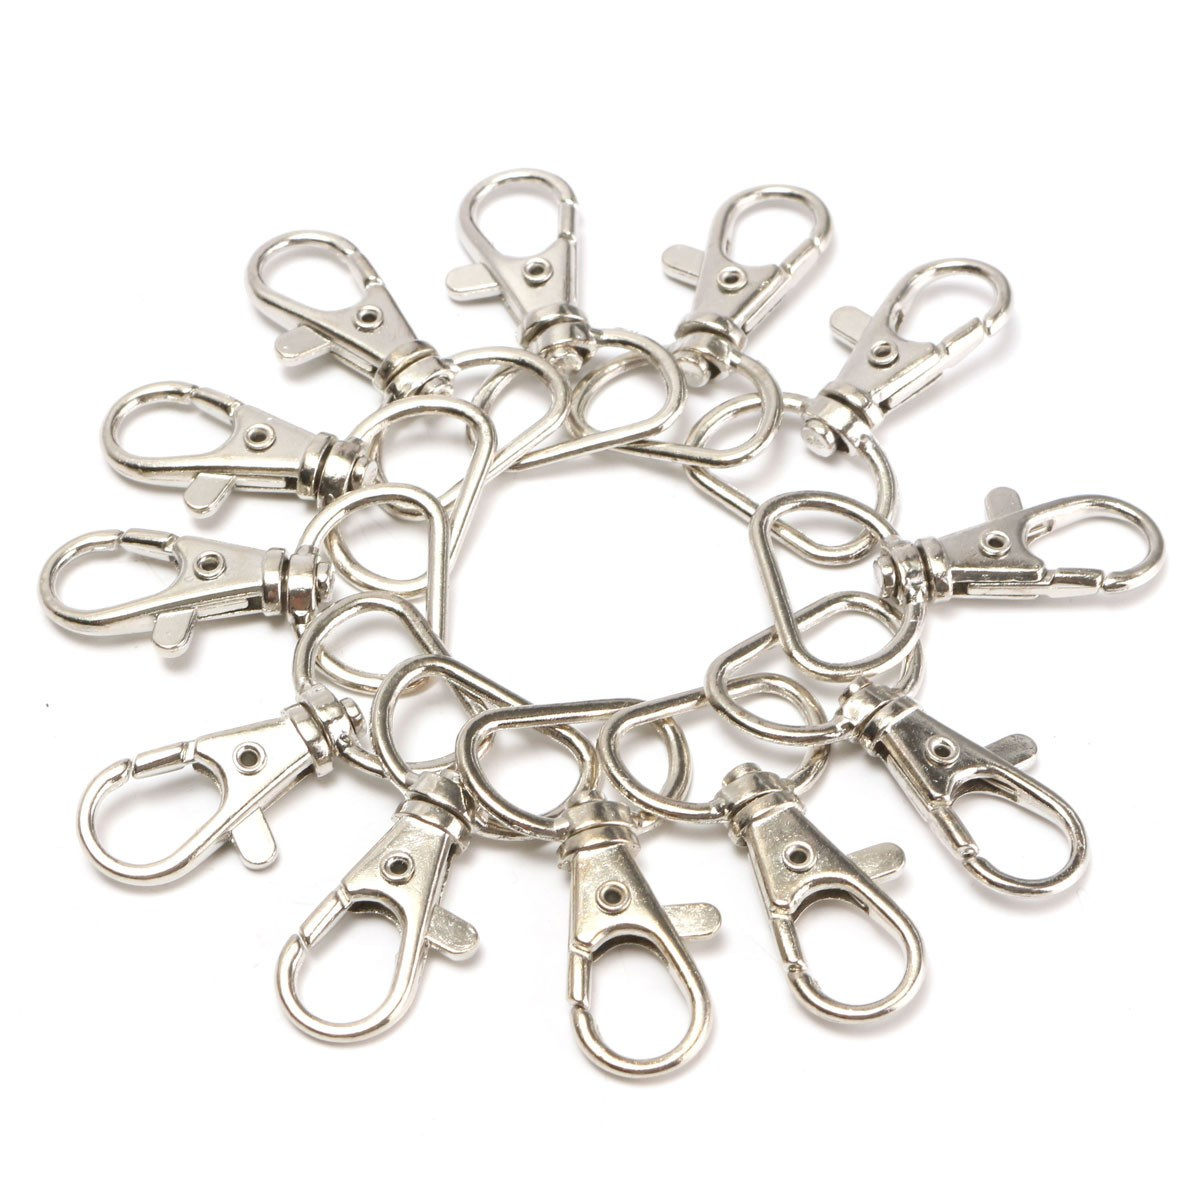 25pcs/packs Silver Metal Lanyard Swivel Snap Diy Handbag Hook Portable Lobster Clasp Clips Bag Accessories Wholesale Buckle Hook To Make One Feel At Ease And Energetic Bag Parts & Accessories